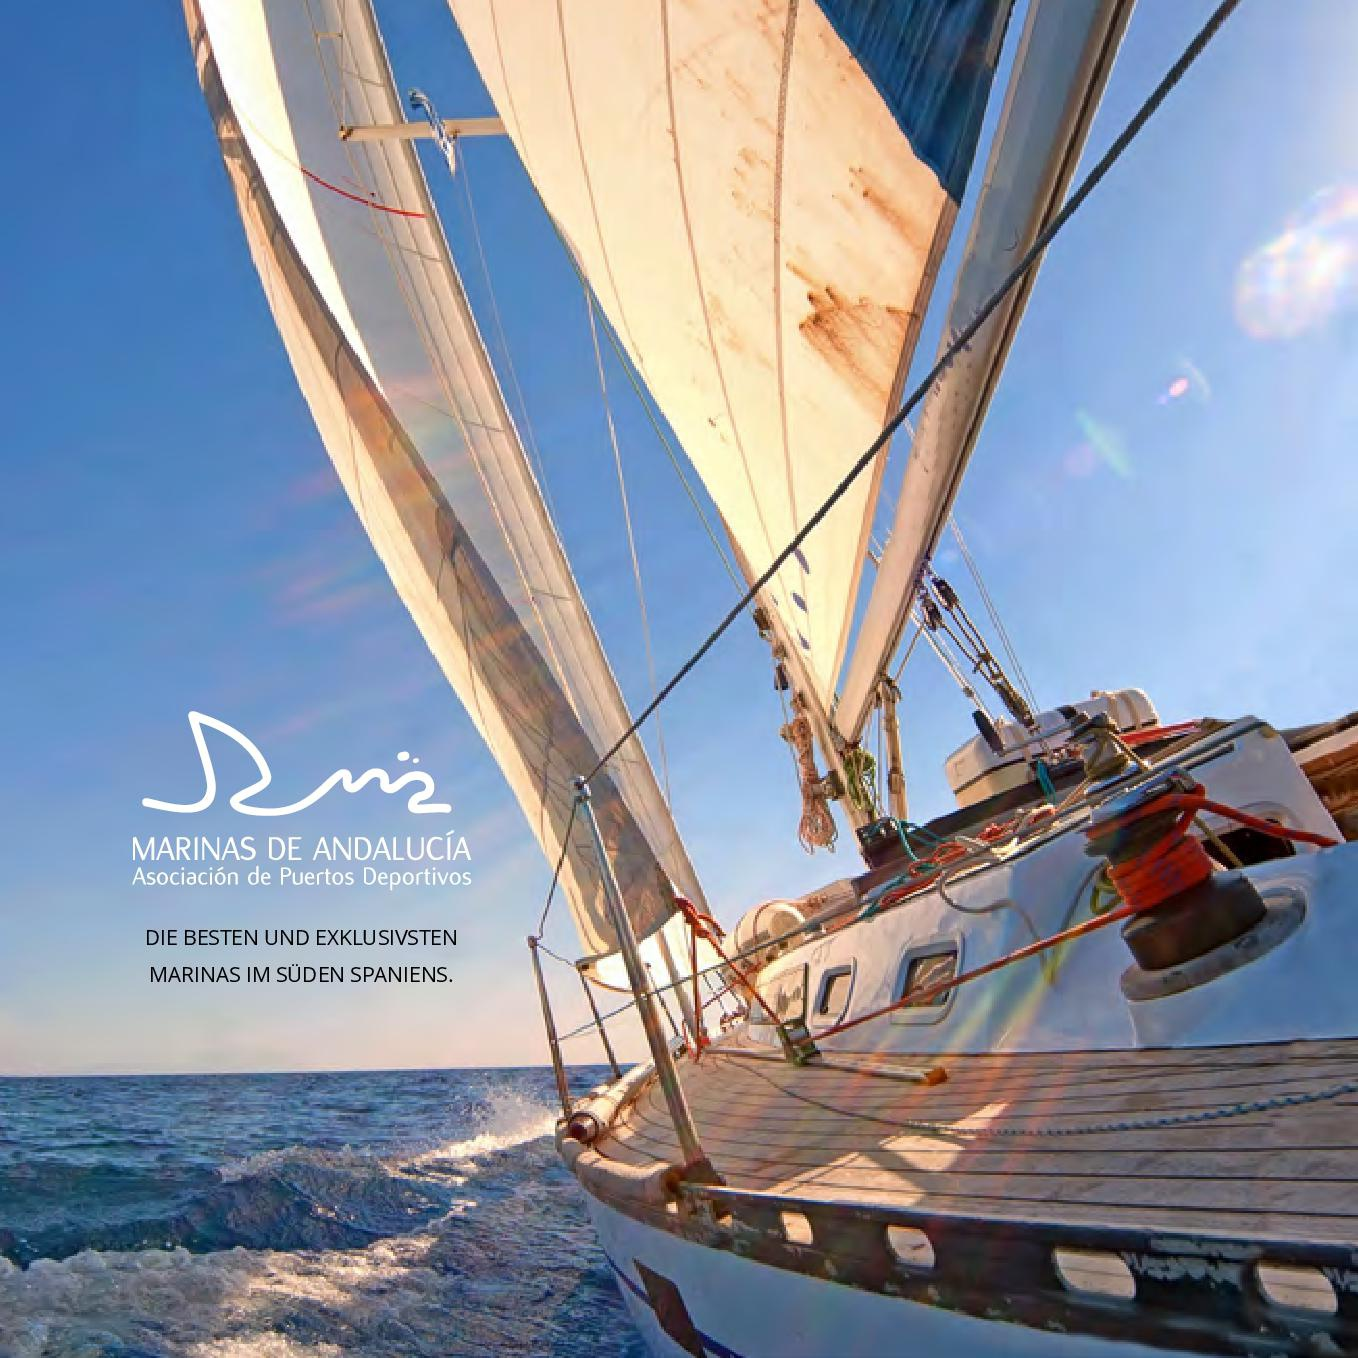 Marinas de Andalucía will promote more than 9,000 moorings at the Düsseldorf Boat Sho